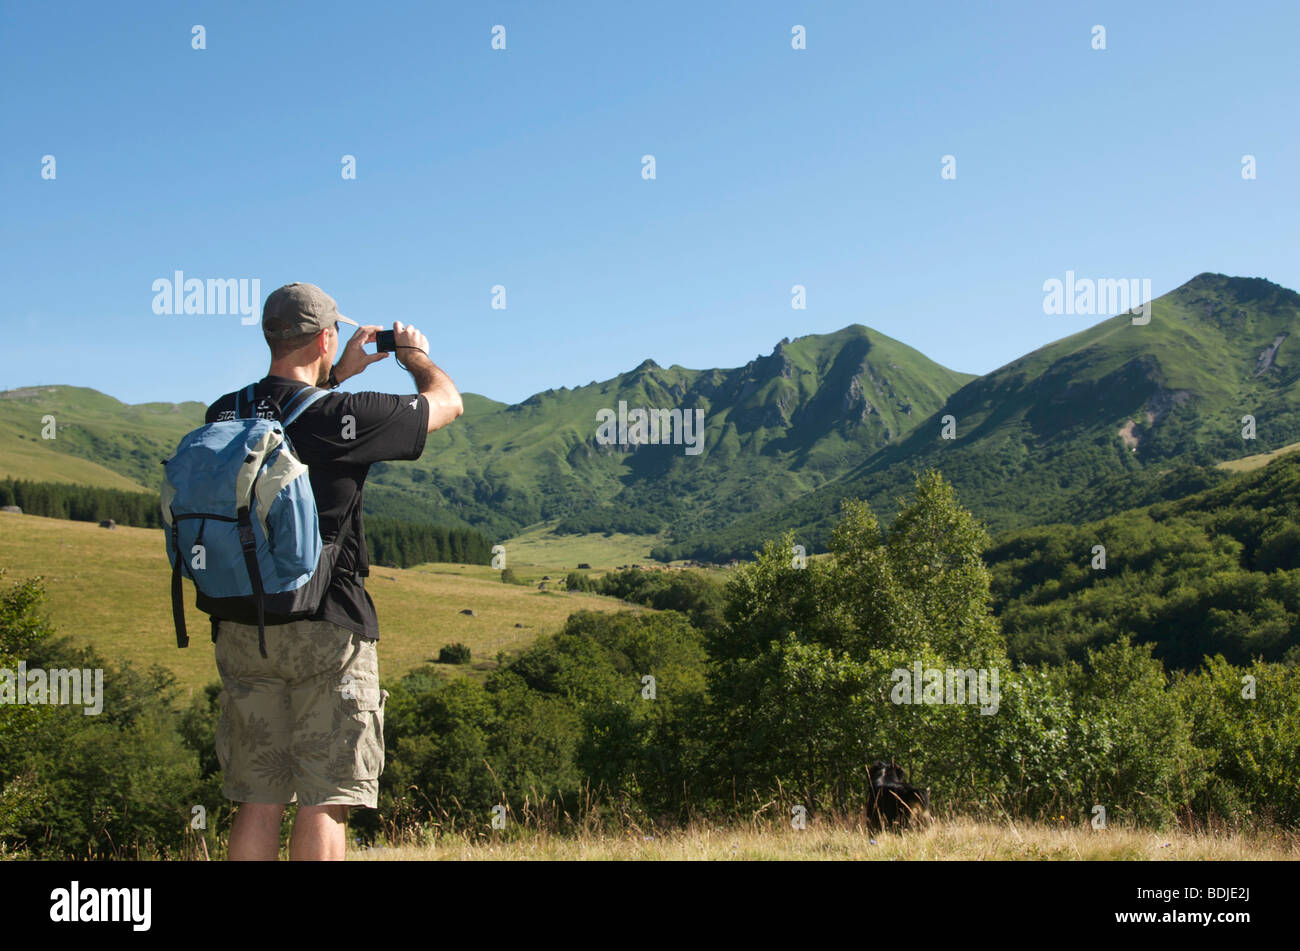 Hiker / walker in the Massif du Sancy, Auvergne, France - taking a photo of the landscape. - Stock Image